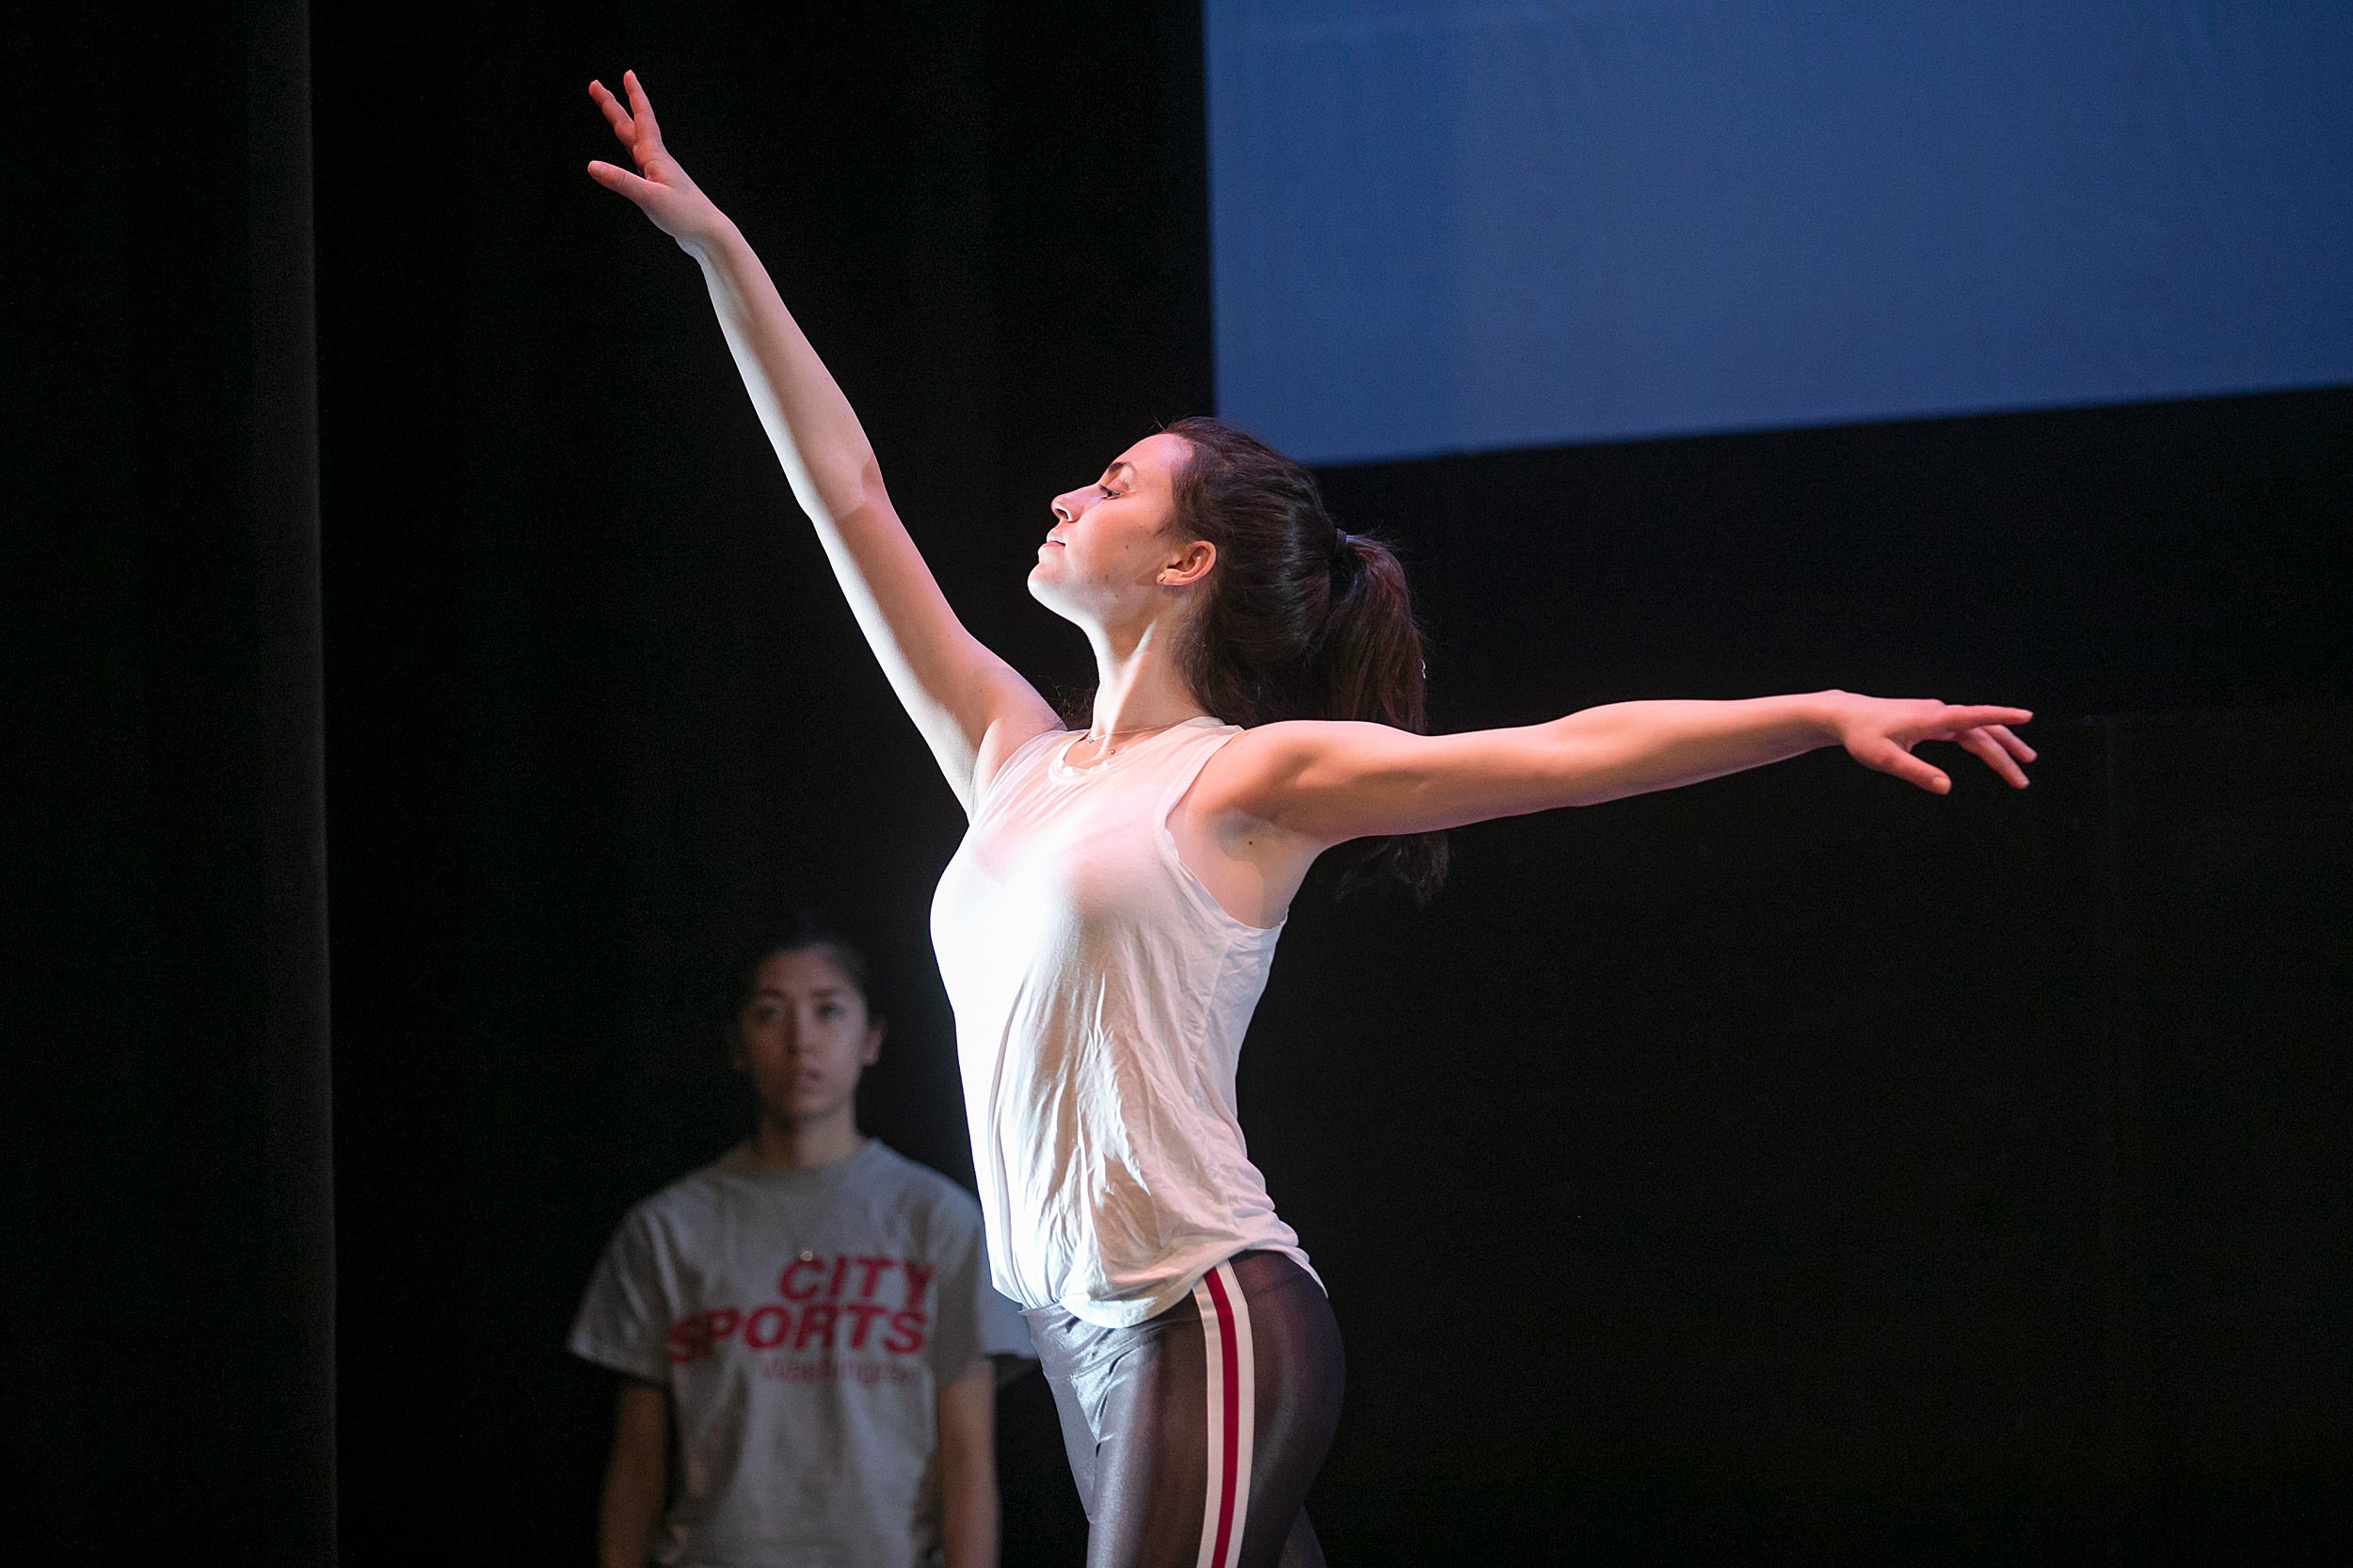 Isabelle Jaffe holds her arms out at different angles.